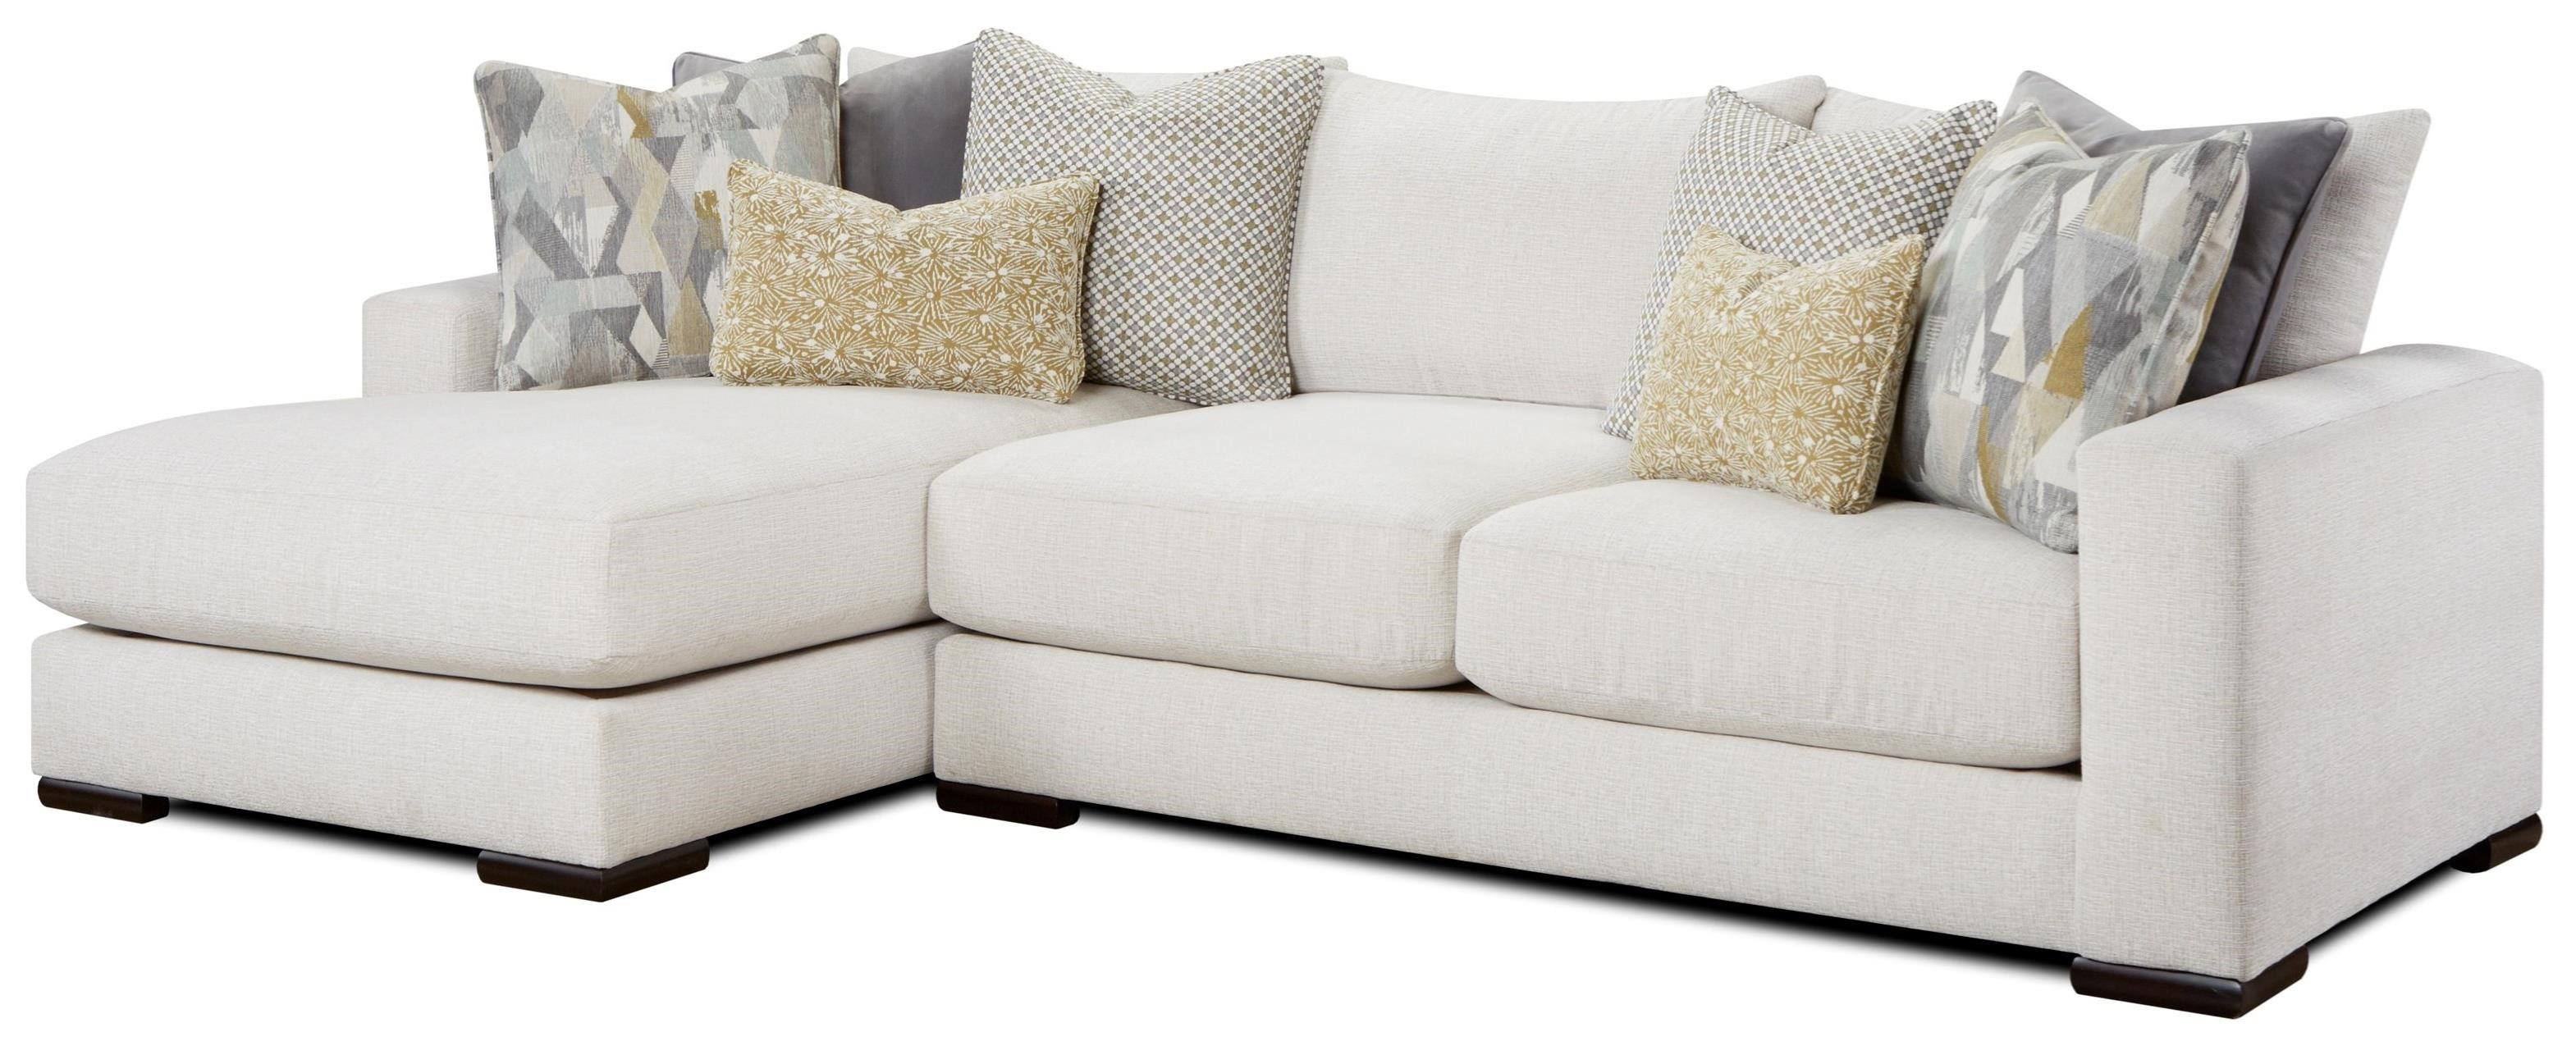 1050-20 2-Piece Sectional with Left Chaise by Fusion Furniture at Furniture Superstore - Rochester, MN